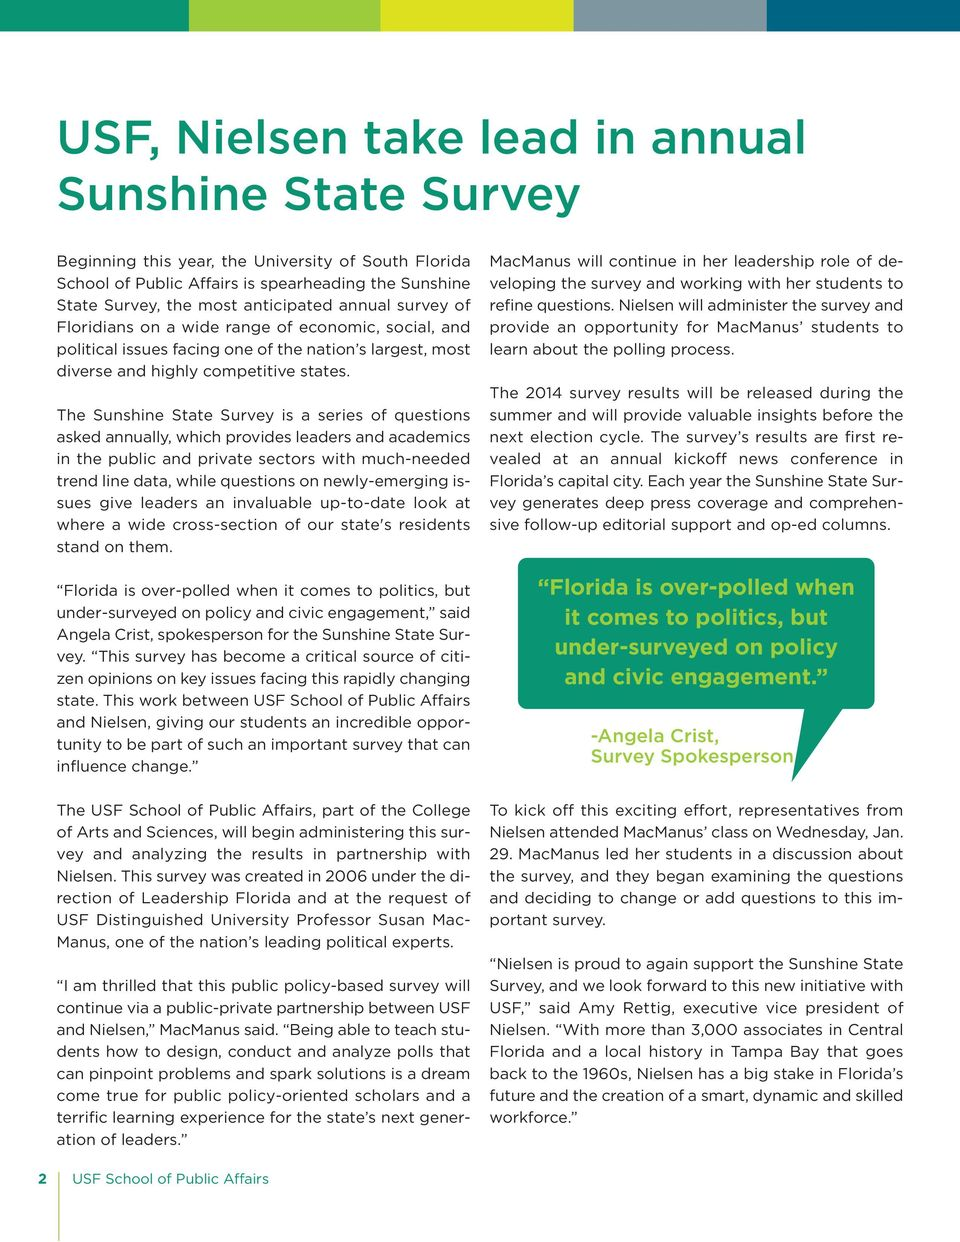 The Sunshine State Survey is a series of questions asked annually, which provides leaders and academics in the public and private sectors with much-needed trend line data, while questions on